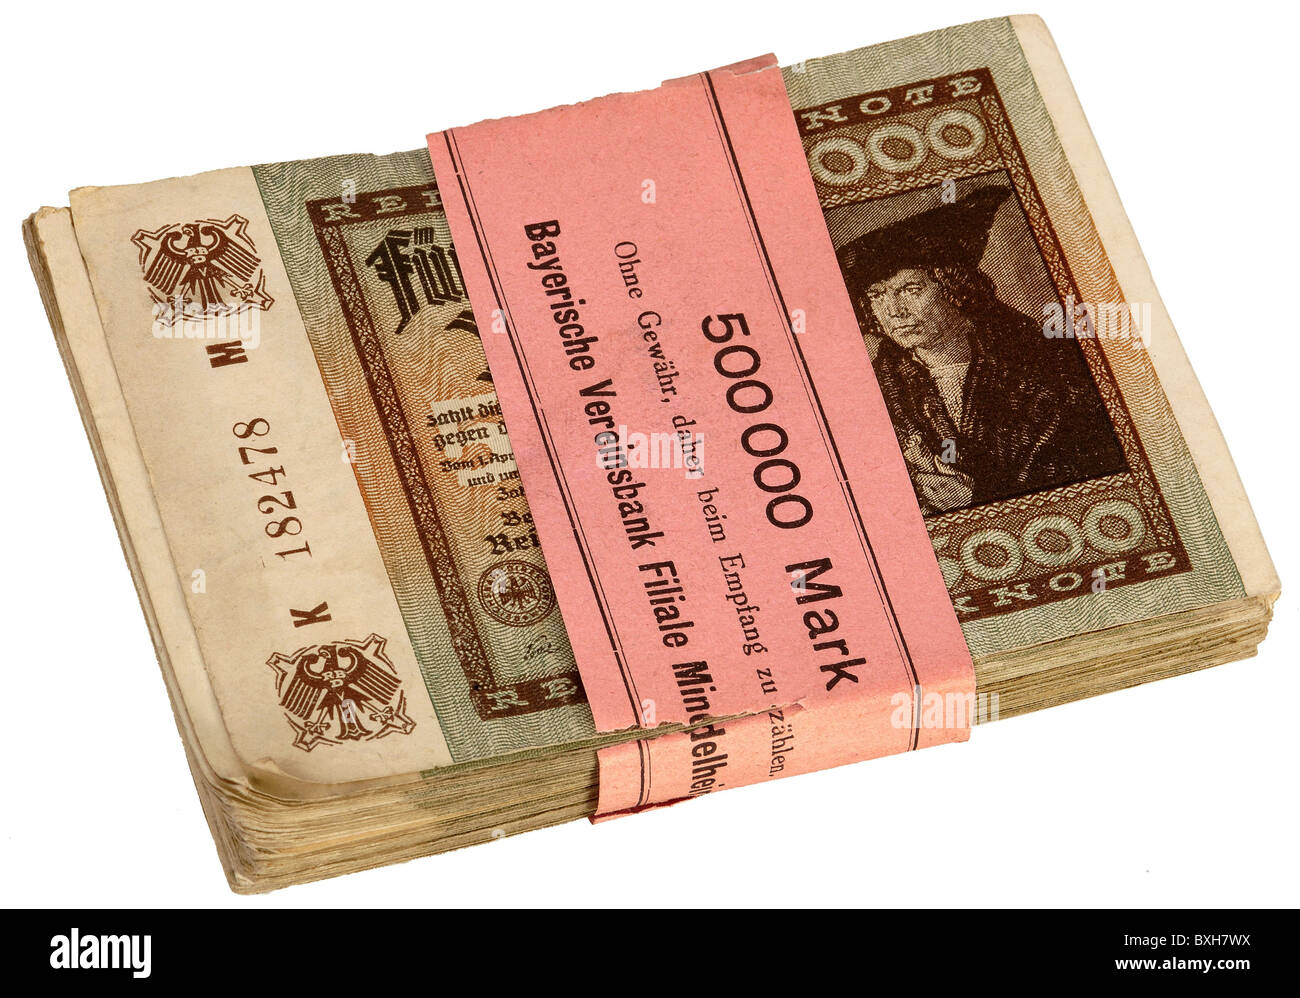 money / finance, bank notes, Germany, inflation money, December 1922, historic, historical, 1920s, 20s, 20th century, - Stock Image